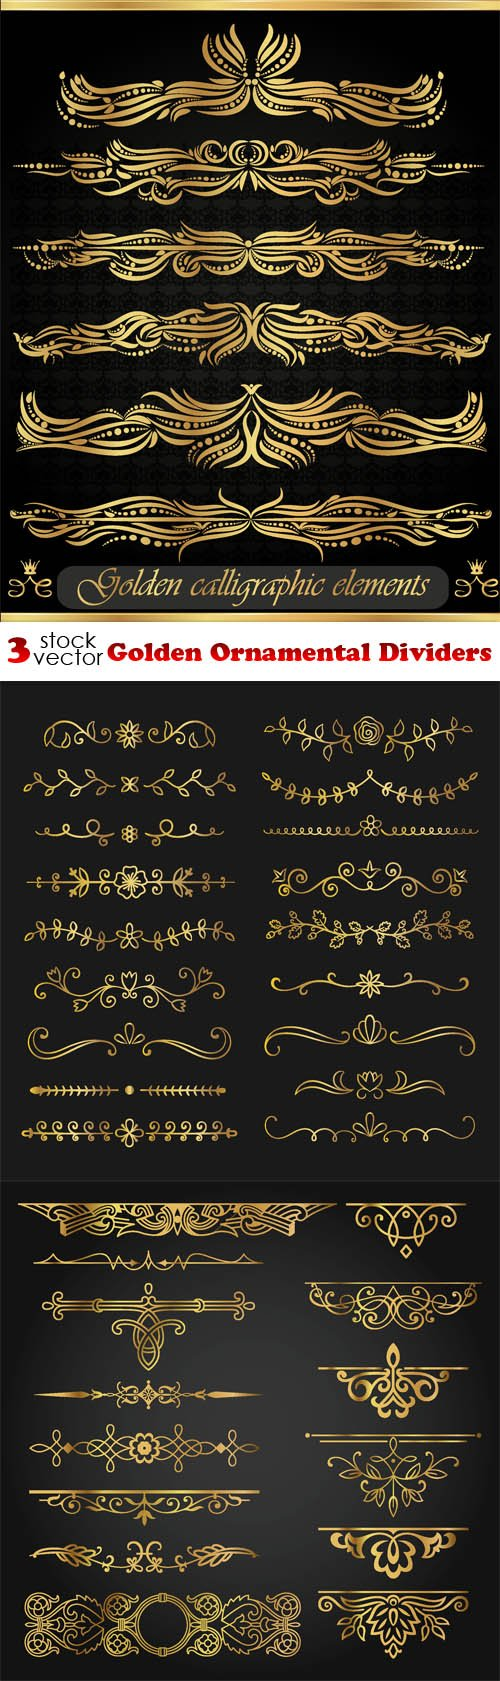 Vectors - Golden Ornamental Dividers